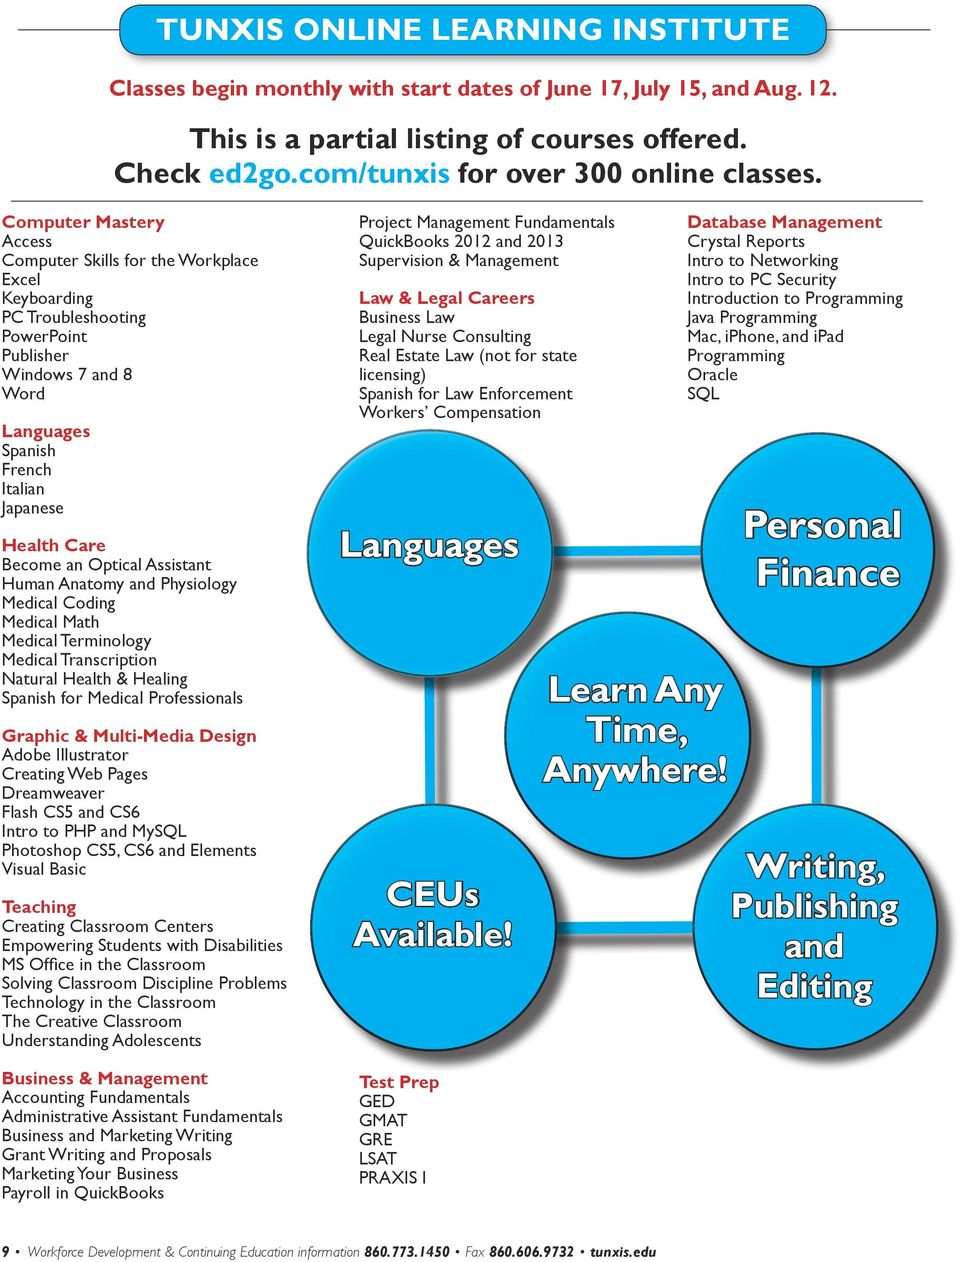 Computer Mastery Access Computer Skills for the Workplace Excel Keyboarding PC Troubleshooting PowerPoint Publisher Windows 7 and 8 Word Languages Spanish French Italian Japanese Health Care Become